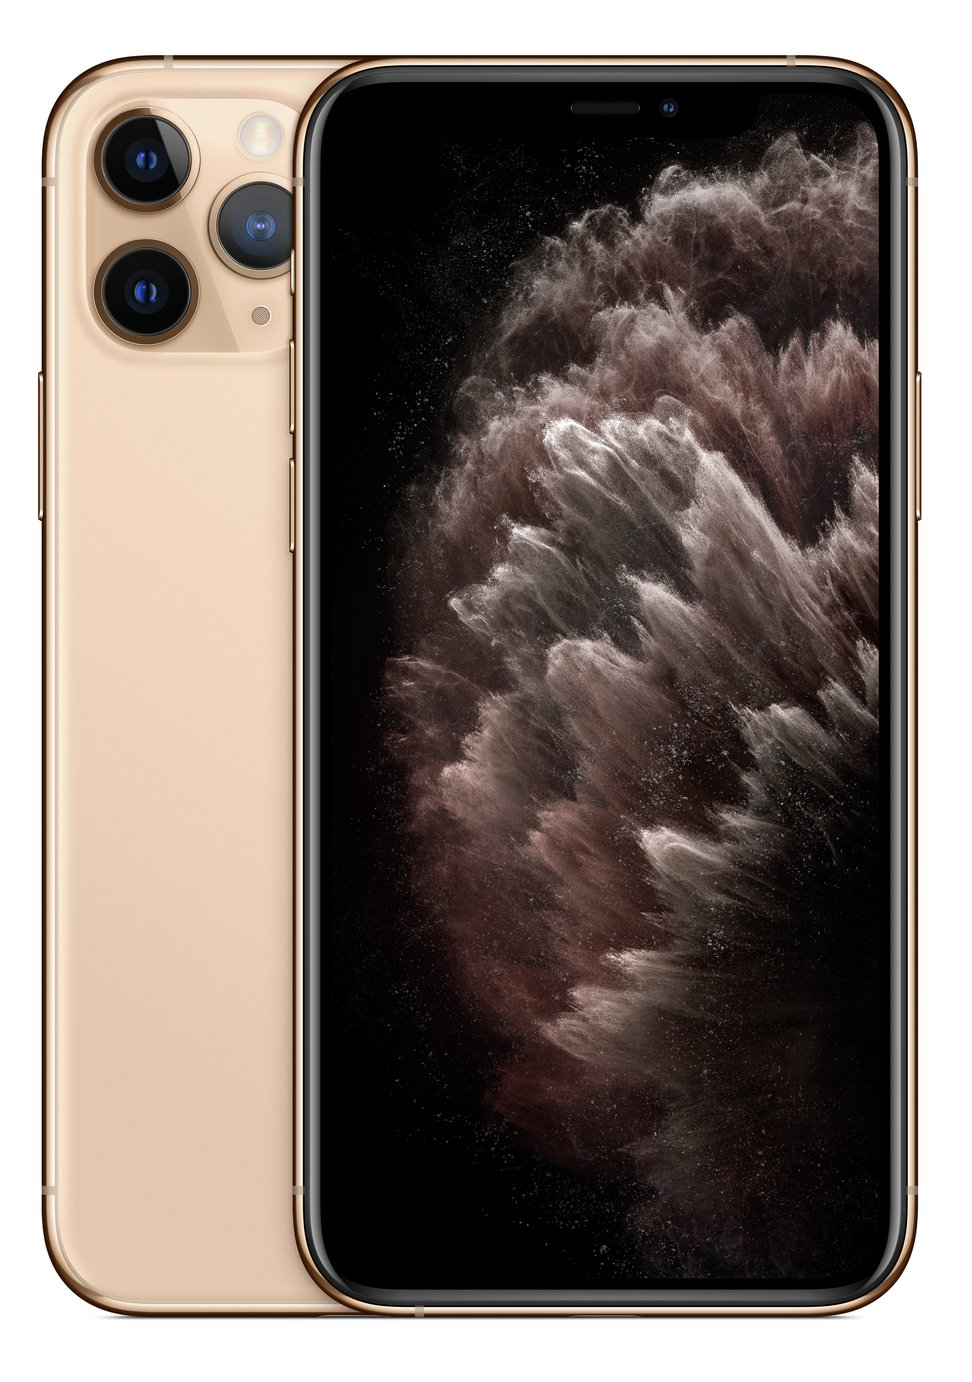 SIM Free iPhone 11 Pro 64GB Mobile Phone - Gold